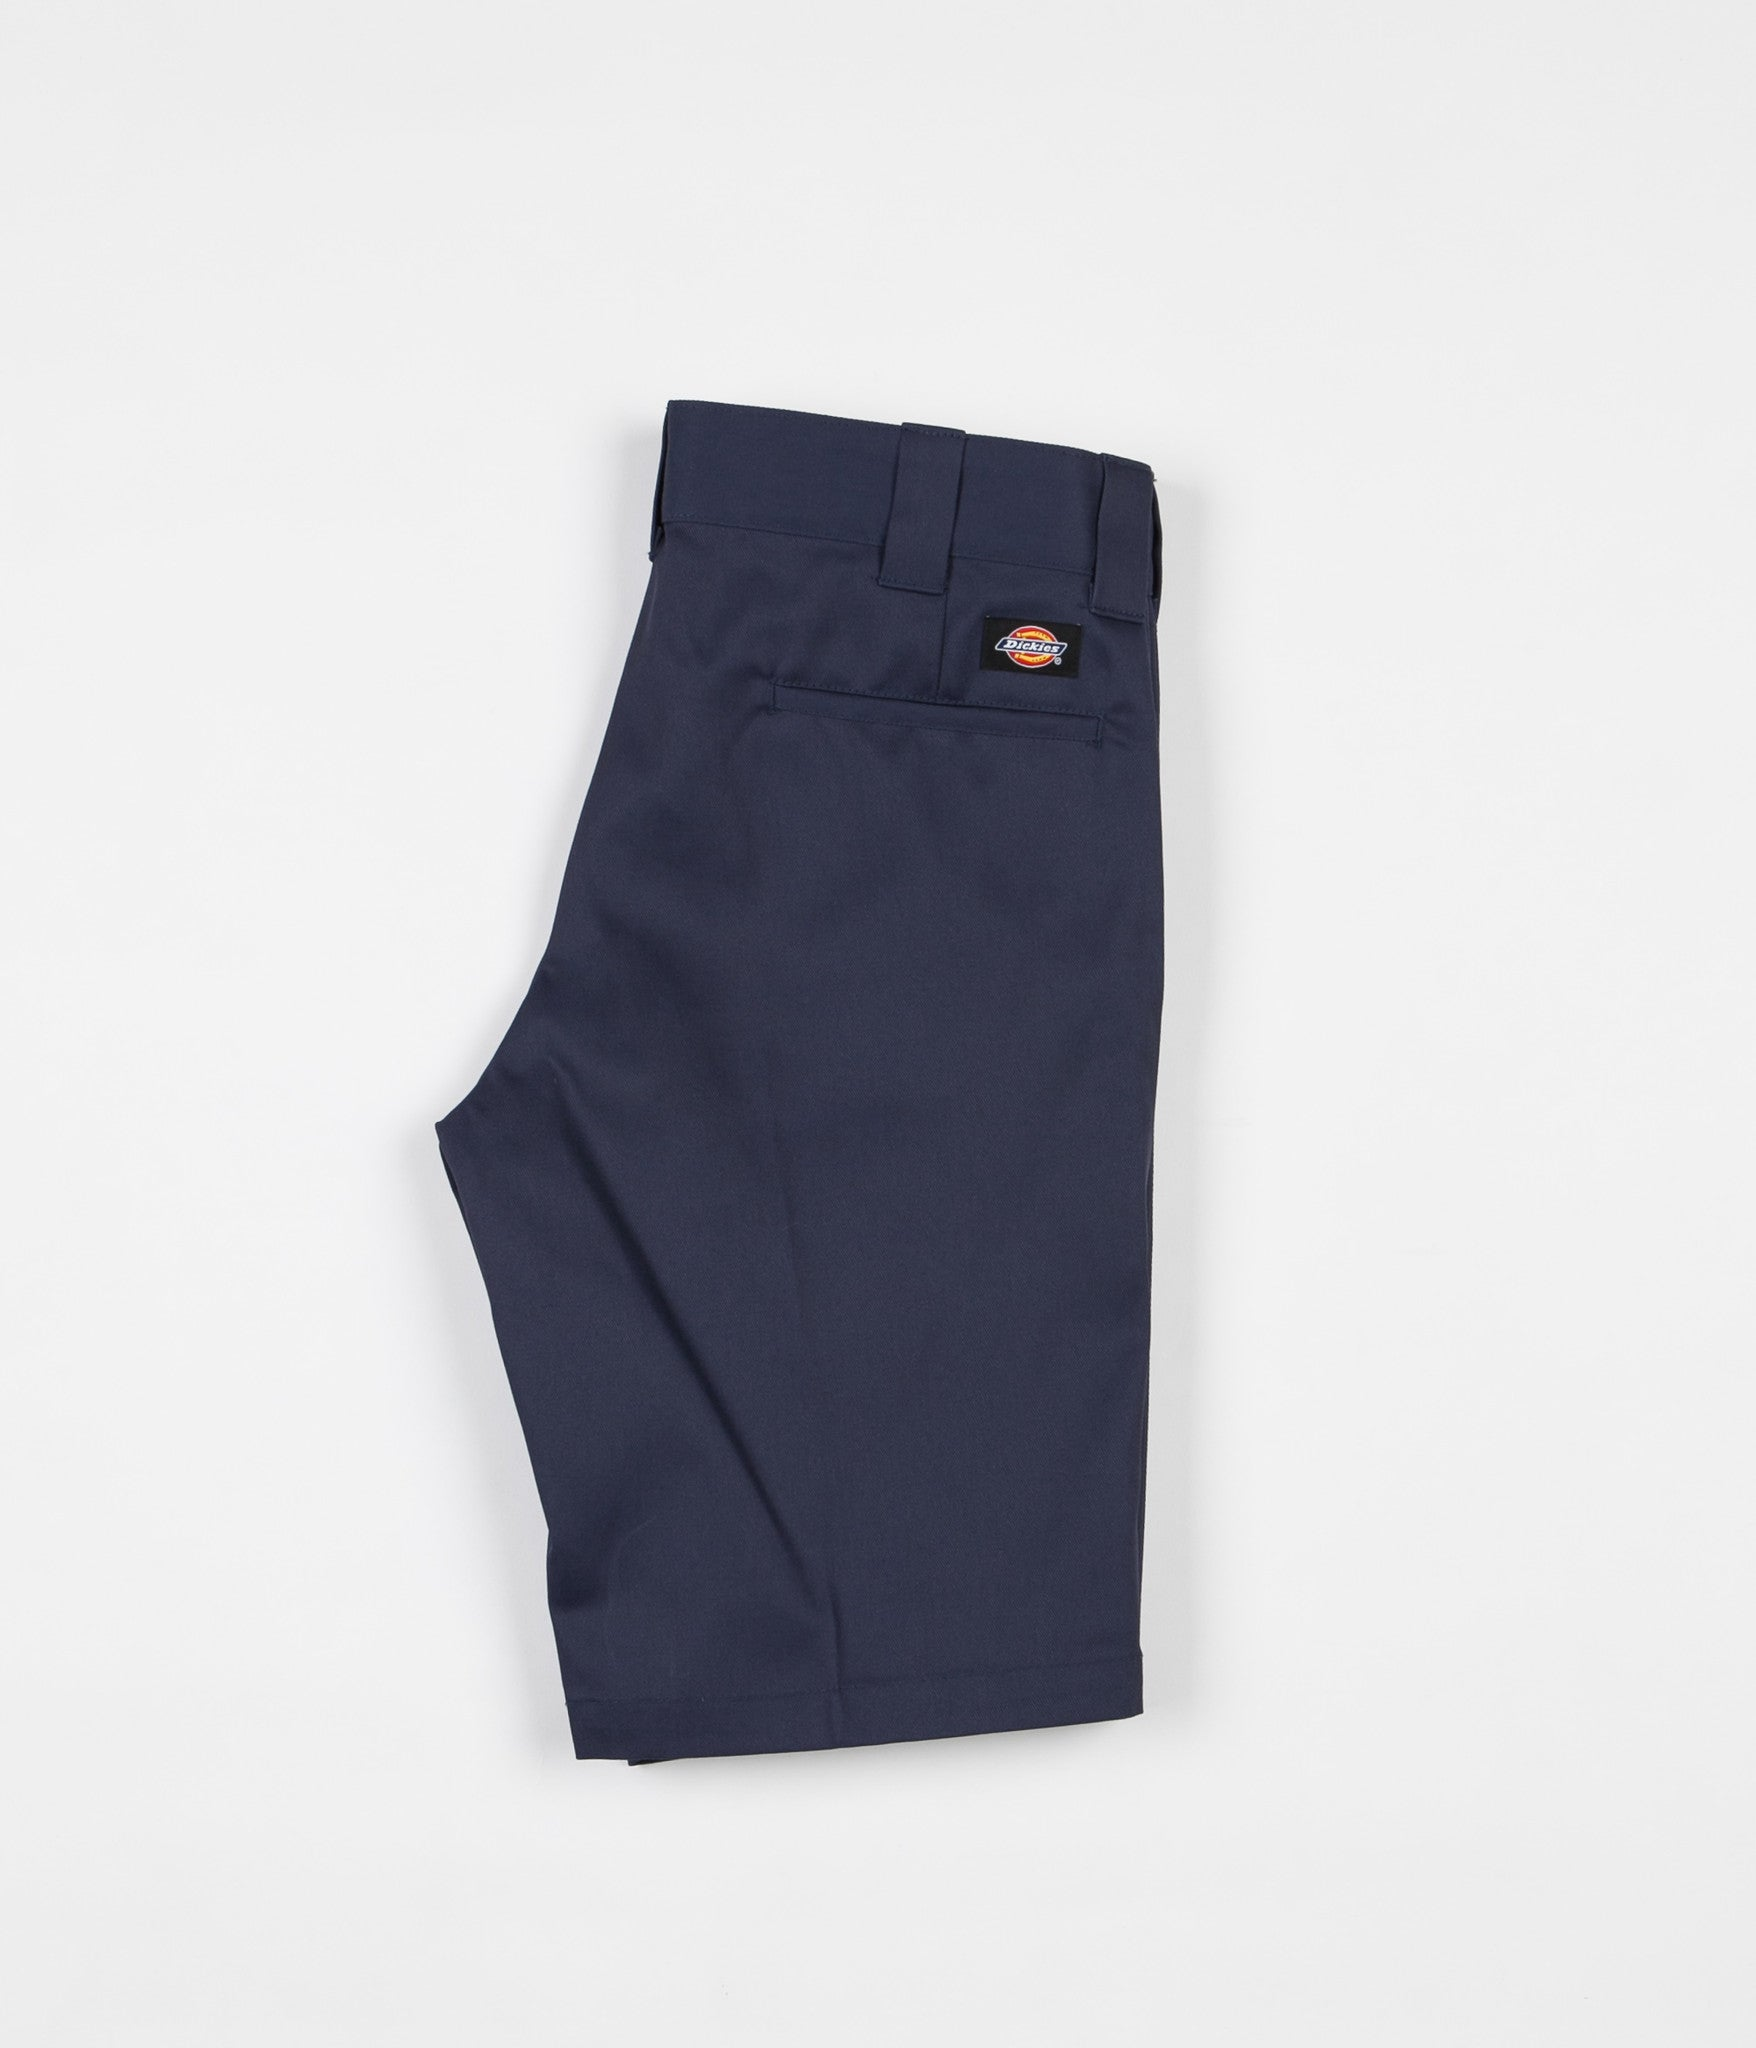 Dickies 273 Slim Fit Work Shorts - Navy Blue